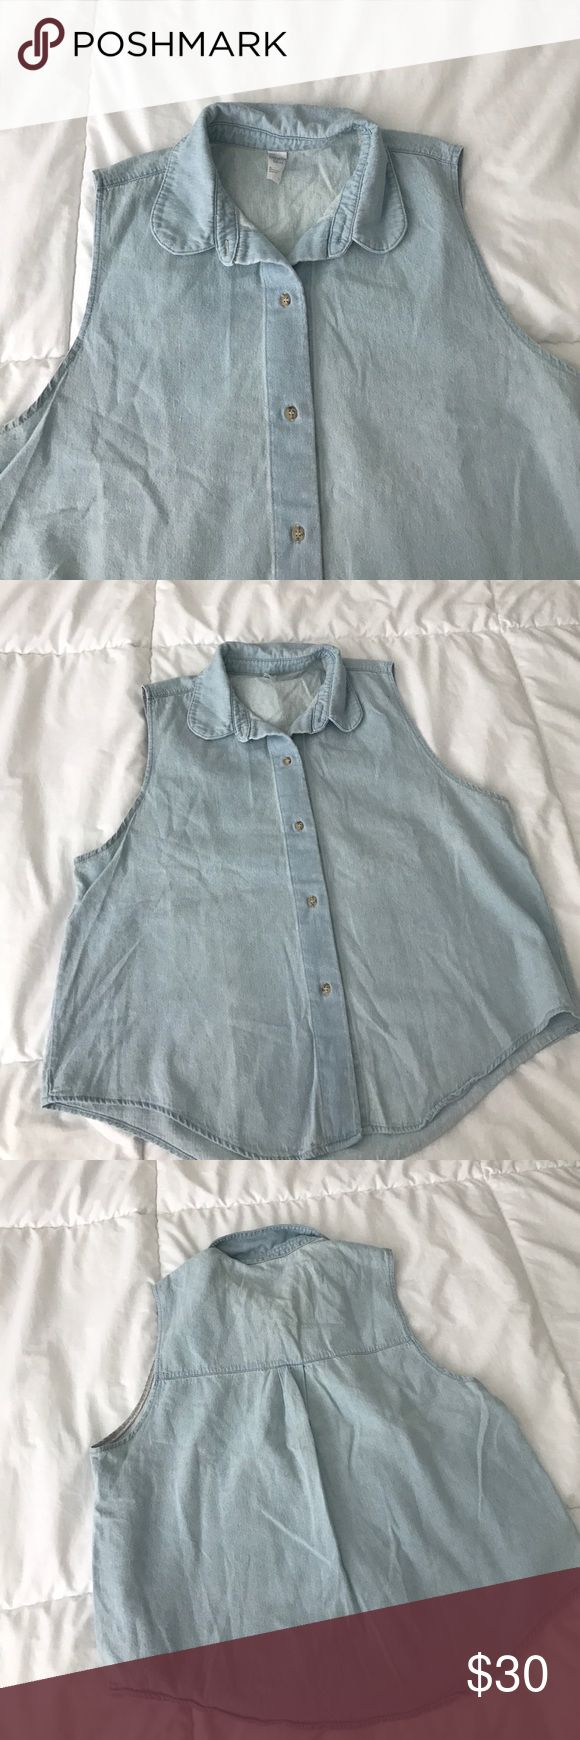 American Apparel sleeveless denim shirt American Apparle poplin denim sleeveless shirt. Button down top is somewhat cropped. Light weight comfortable denim, worn a few times and washed. Size M/L. Perfect for spring and summer or for layering! American Apparel Tops Button Down Shirts